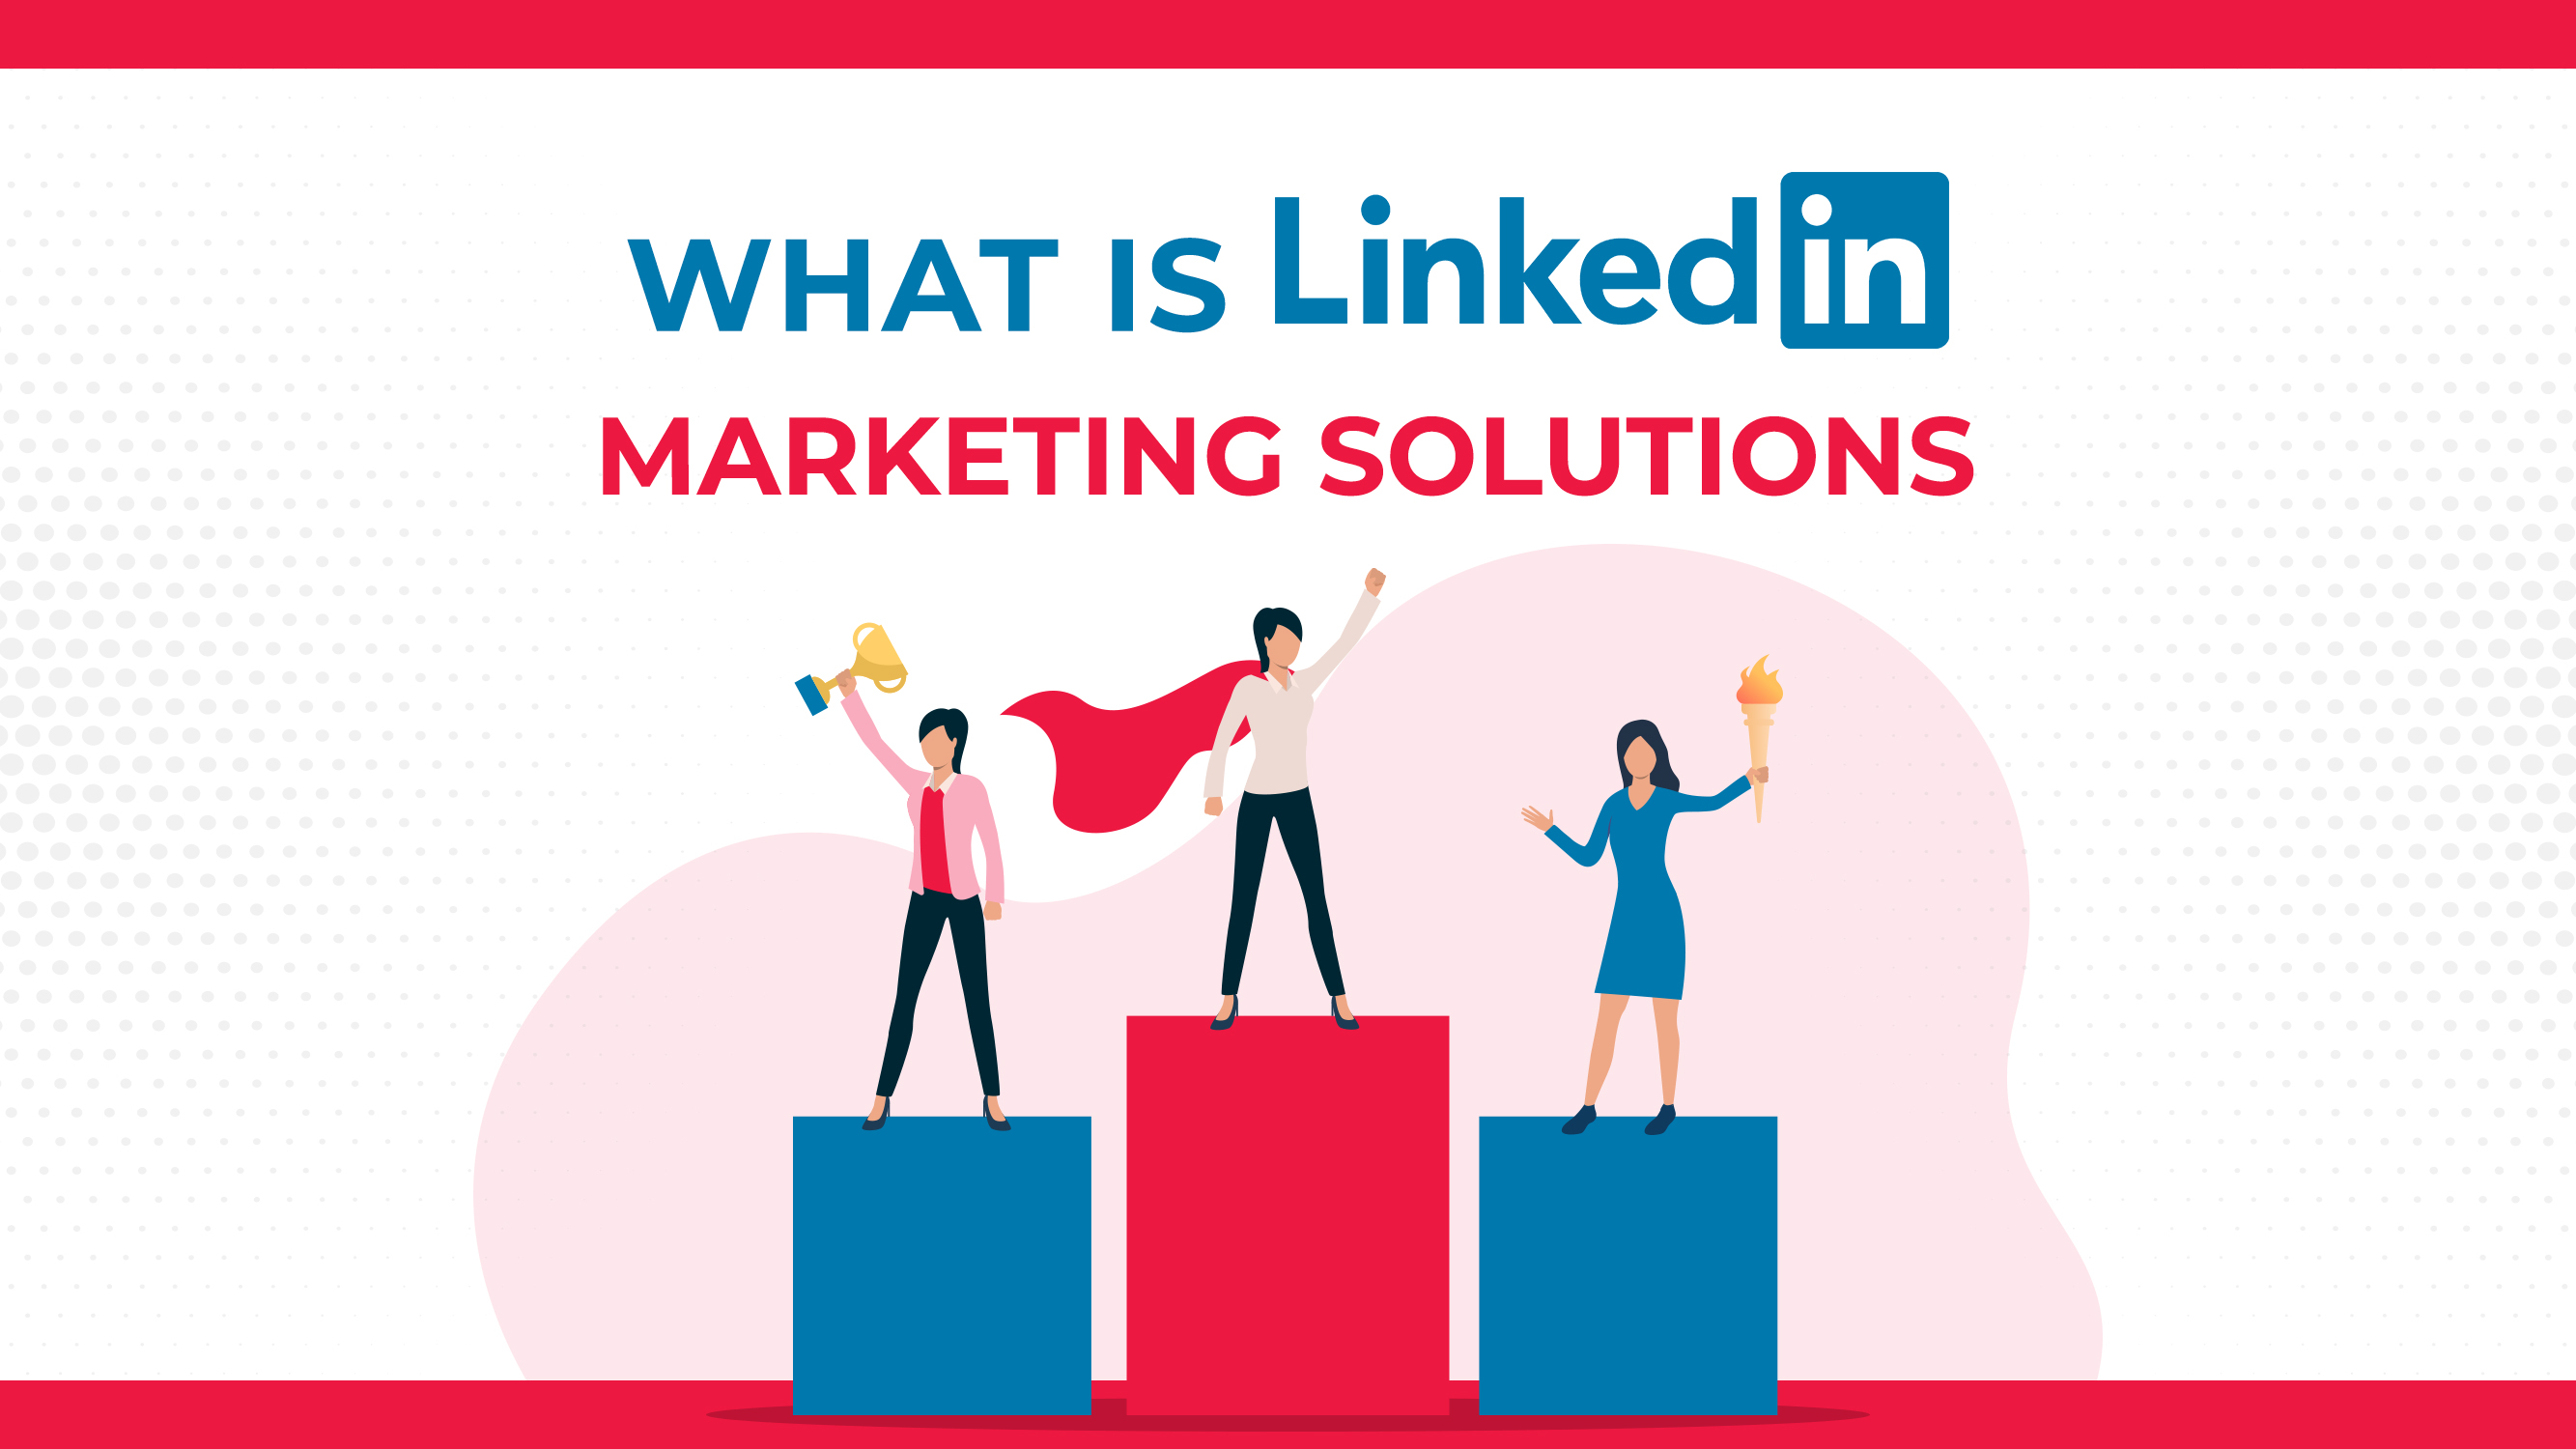 What Is LinkedIn Marketing Solutions?